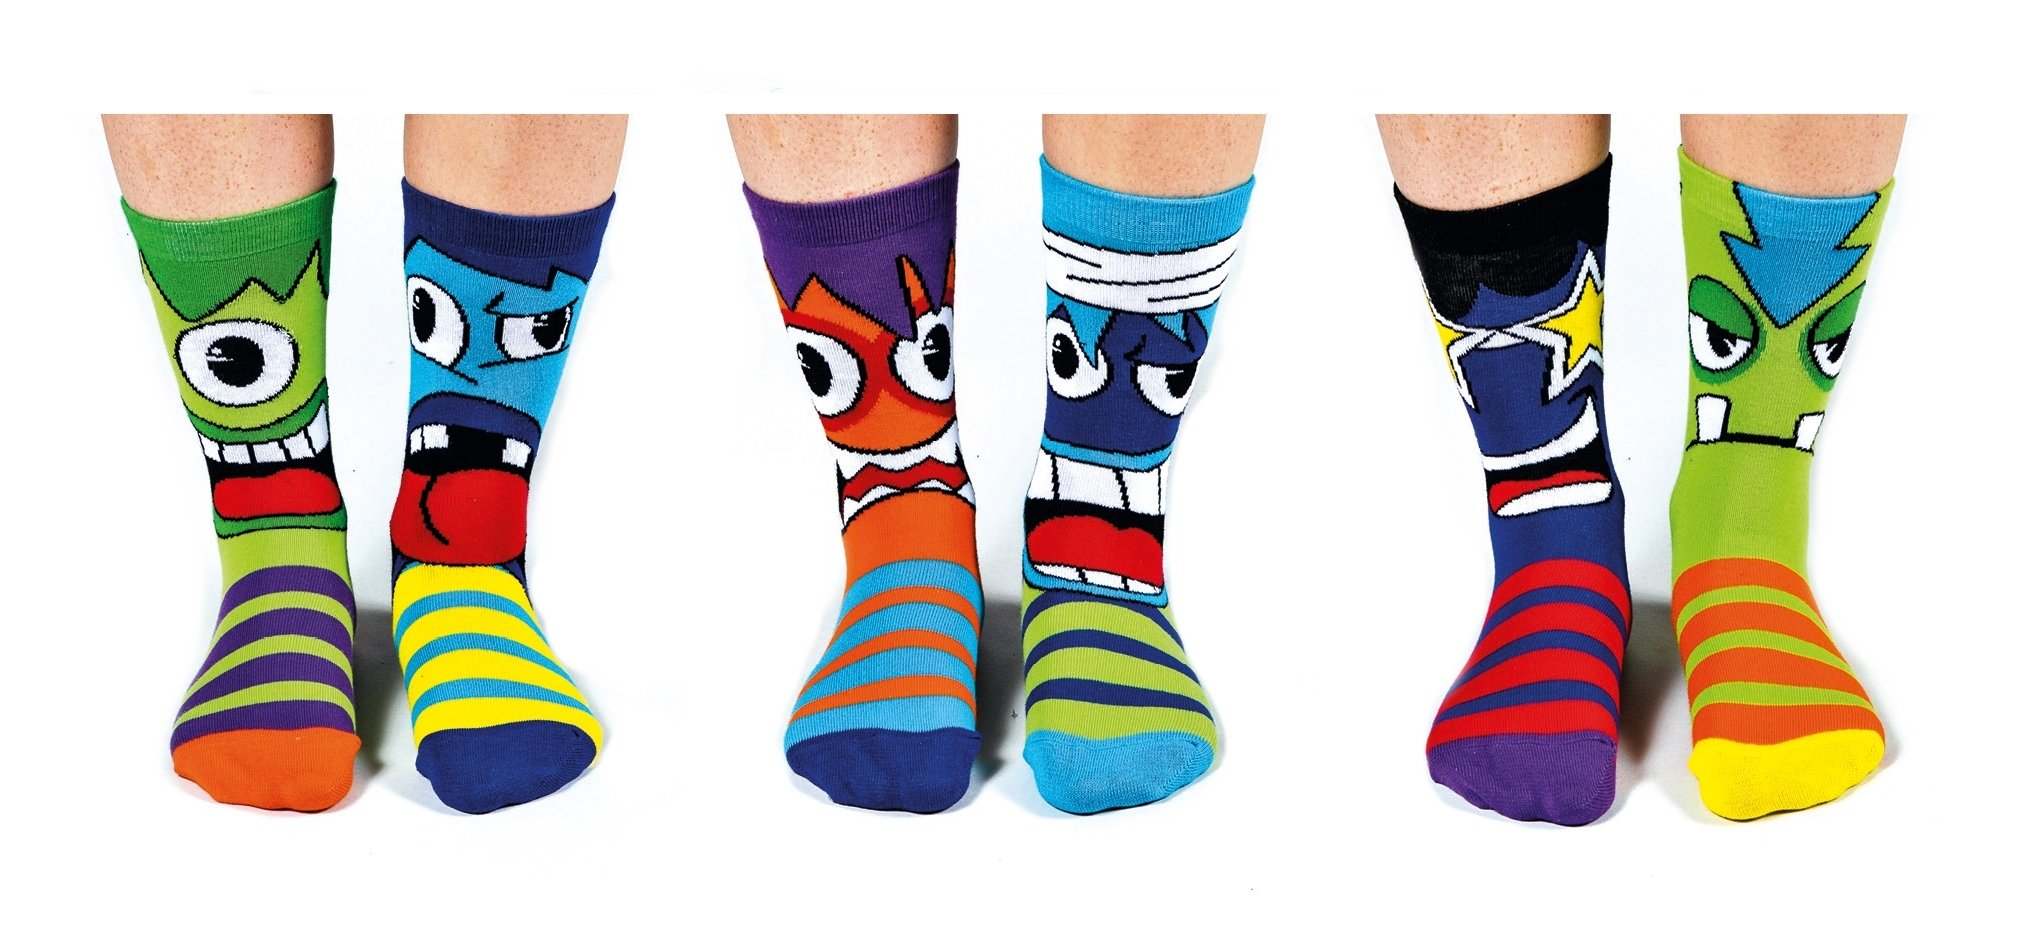 United Oddsocks - Recuadro 6 Odd calcetines para los muchachos- Mashers product image